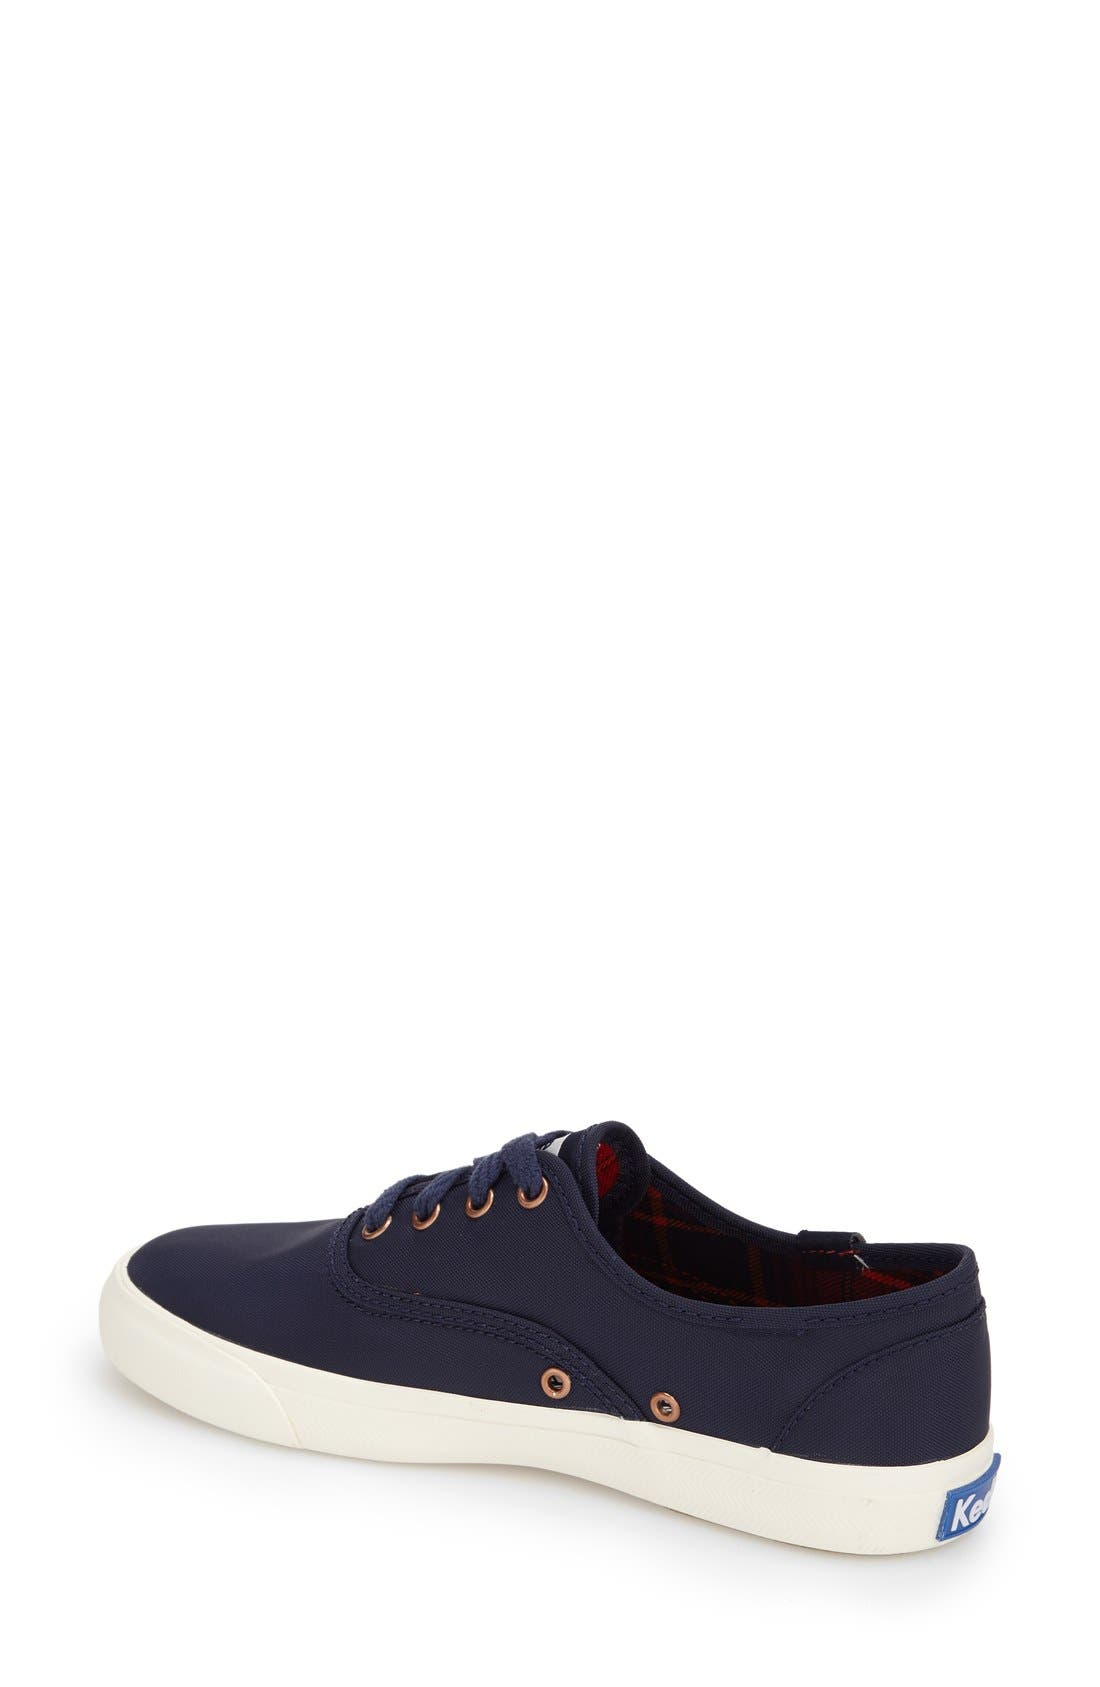 Alternate Image 2  - Keds® 'Triumph' Sneaker (Women)